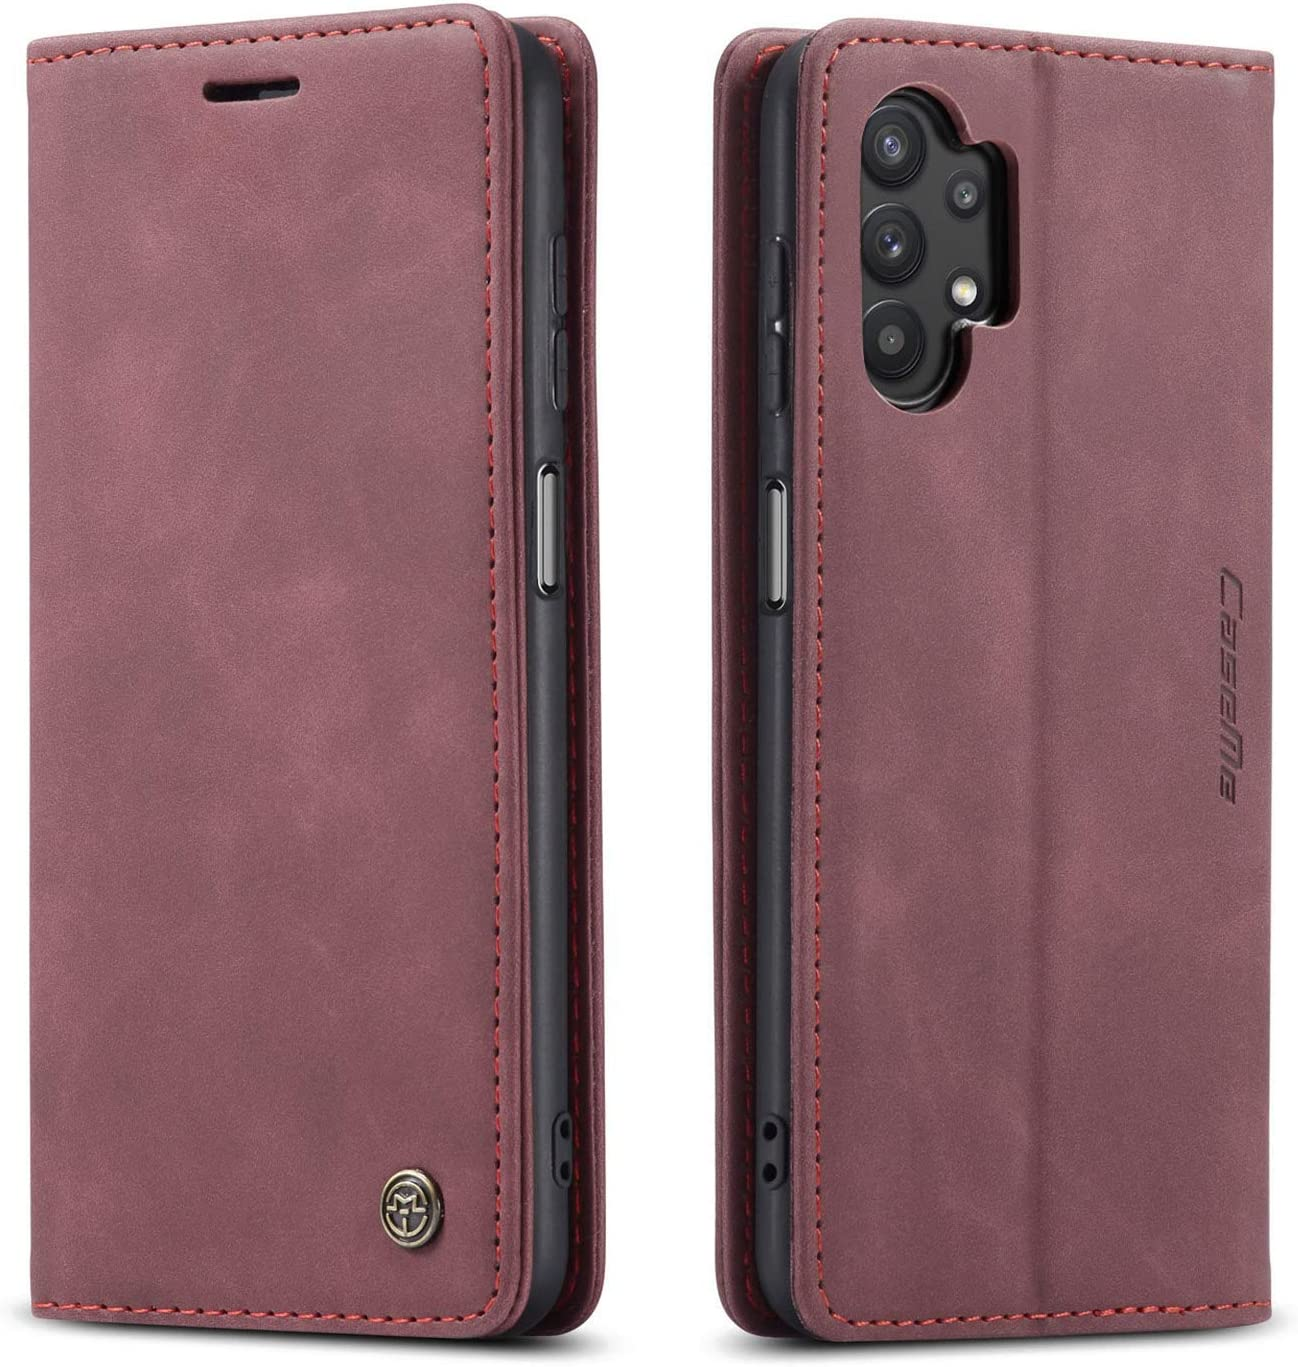 Kowauri Flip Case for Galaxy A32 4G [NOT Compatible with Galaxy A32 5G],Leather Wallet Case Classic Design with Card Slot and Magnetic Closure Flip Fold Case for Samsung Galaxy A32 4G (Wine red)